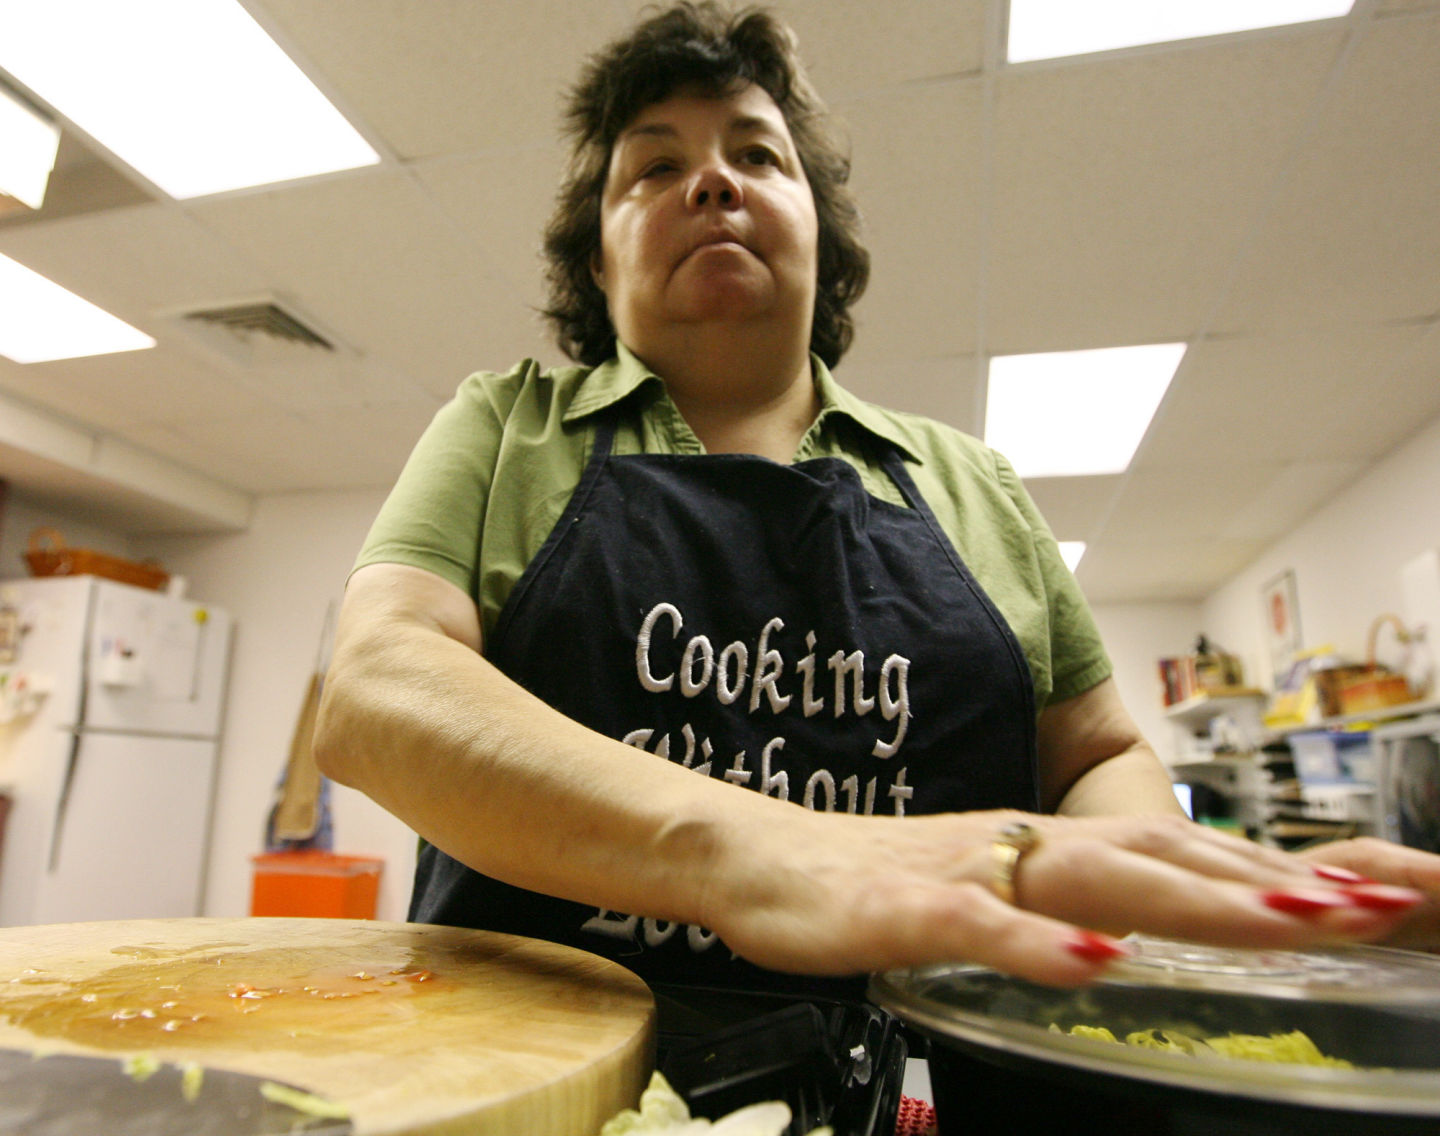 Cooking With Disabilities: An Exercise In Creative Problem Solving